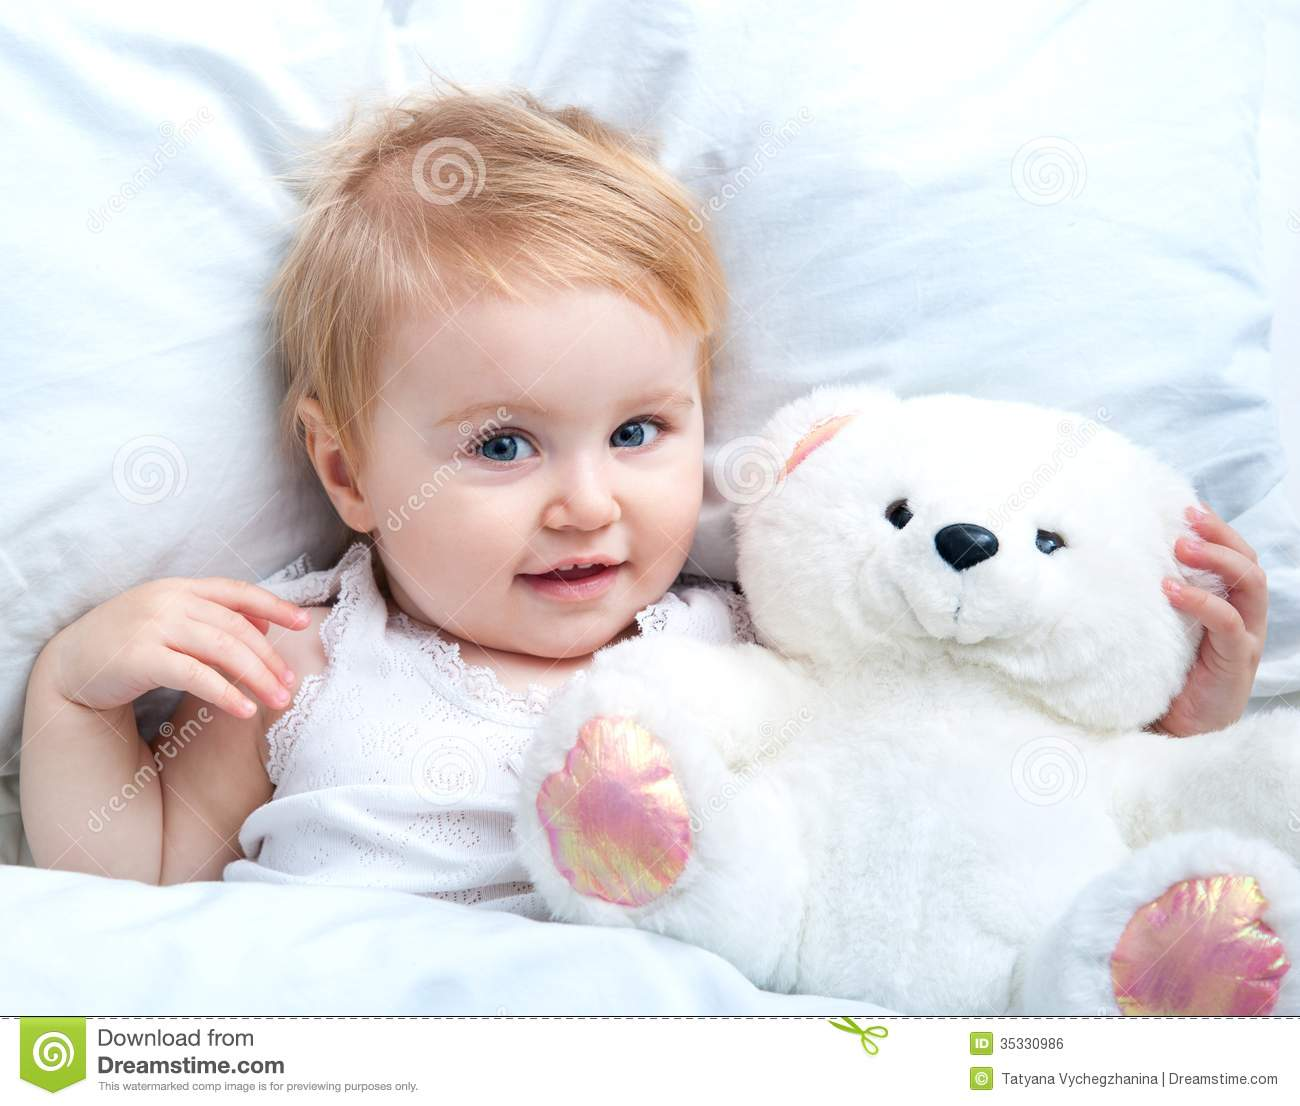 baby lying in a white bed stock photo. image of lifestyle - 35330986